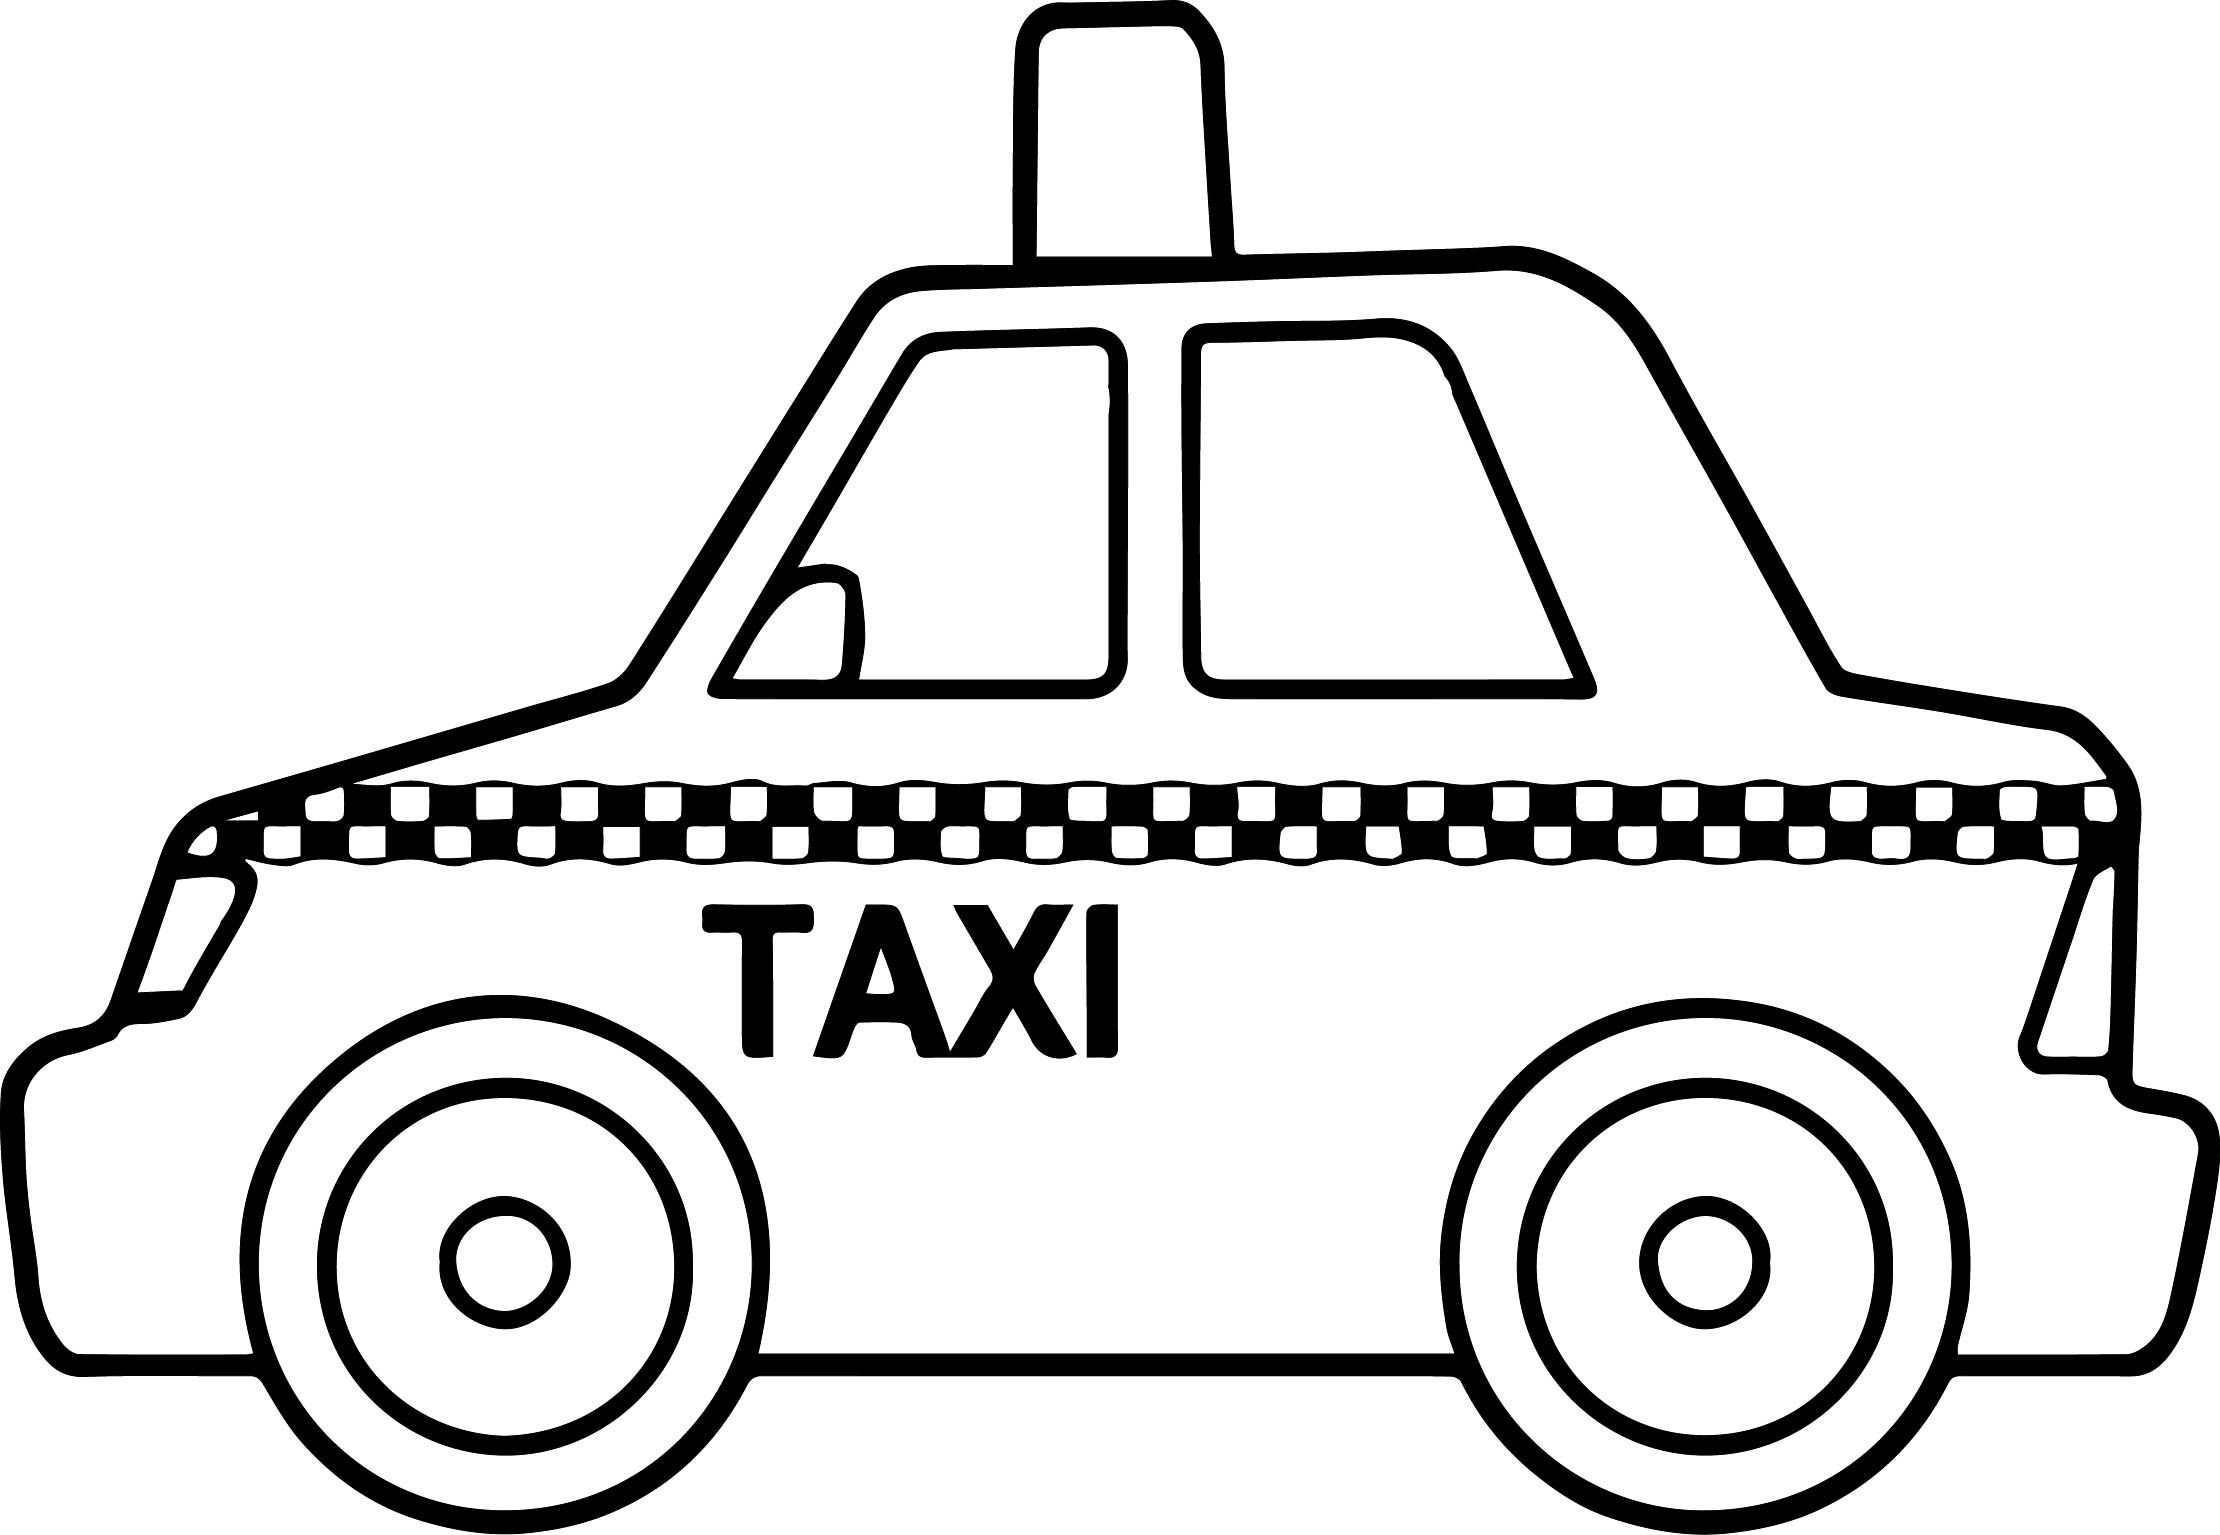 awesome Basic Taxi Toy Car Coloring Page Cars coloring